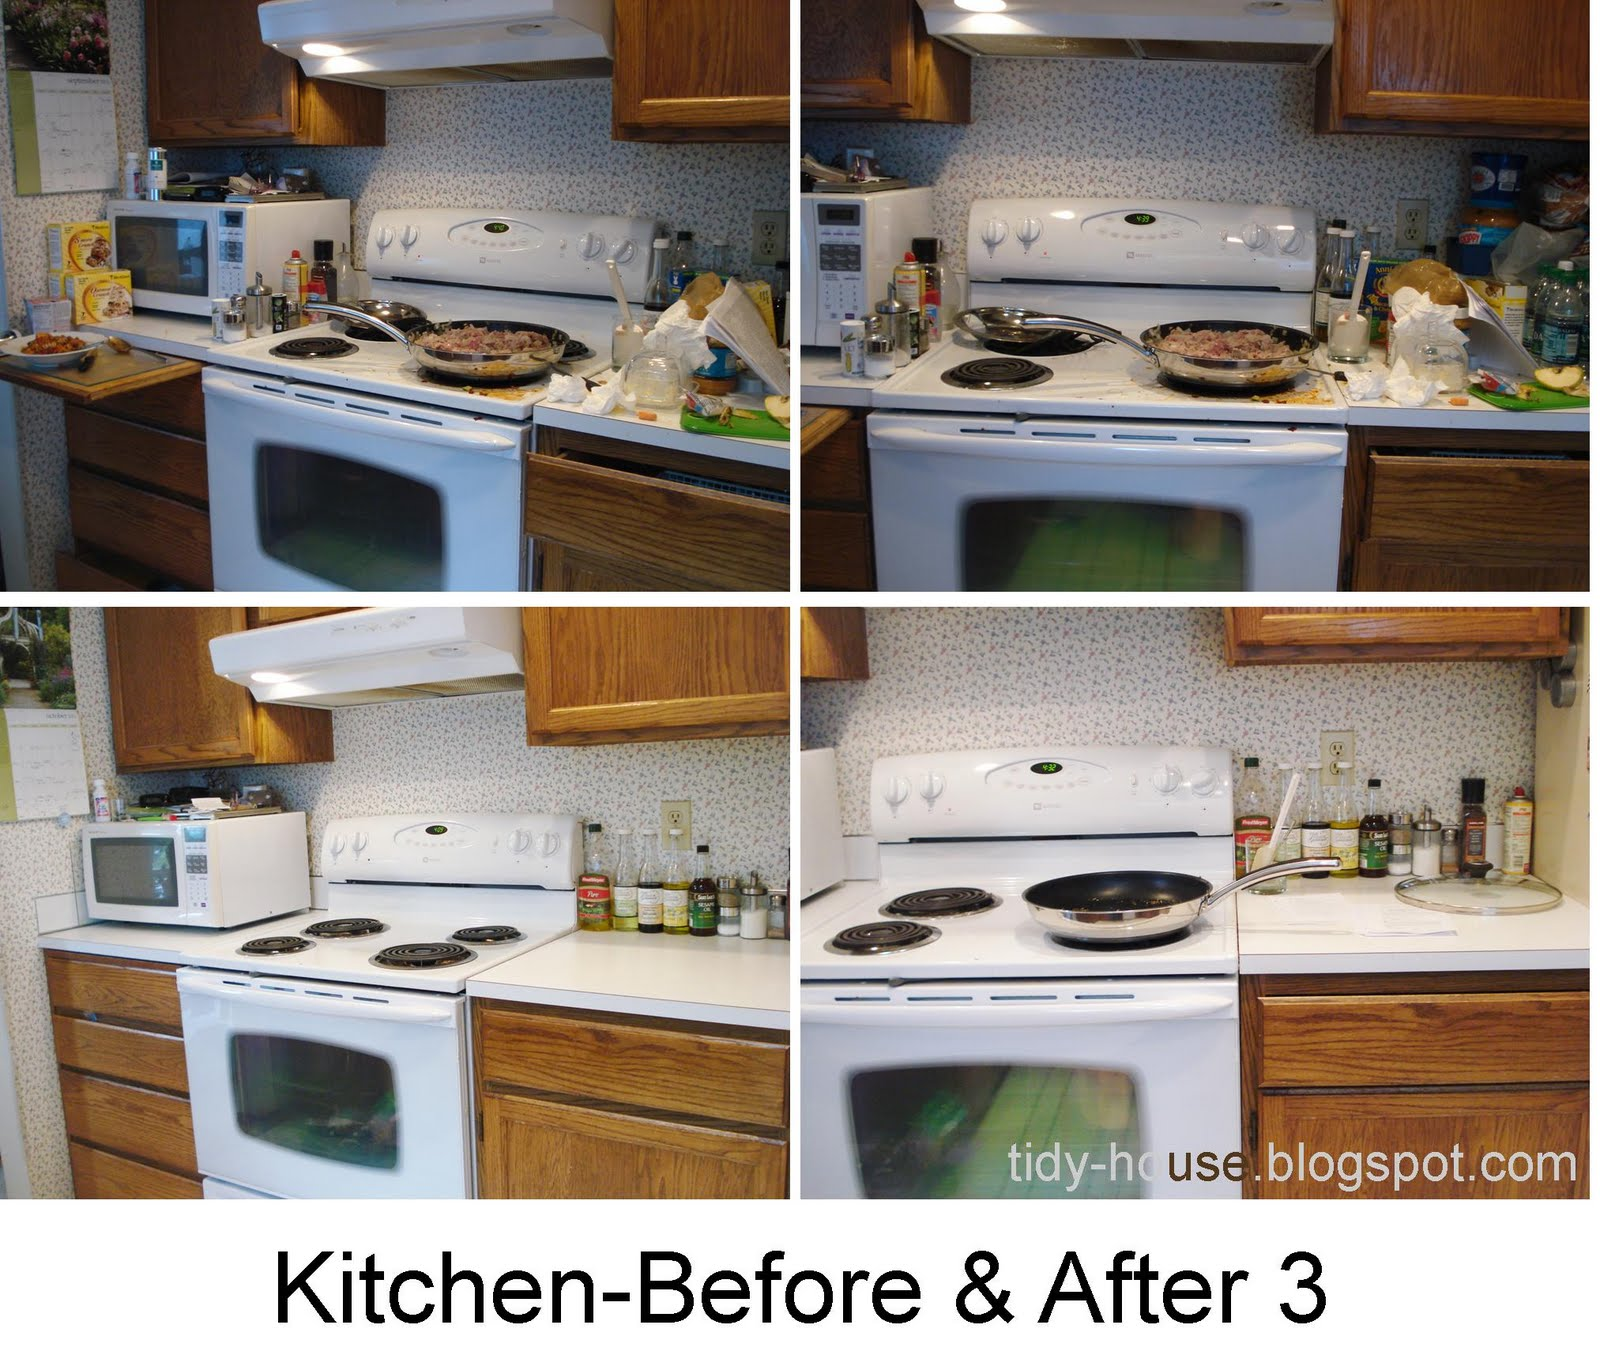 Messy Kitchen Before And After